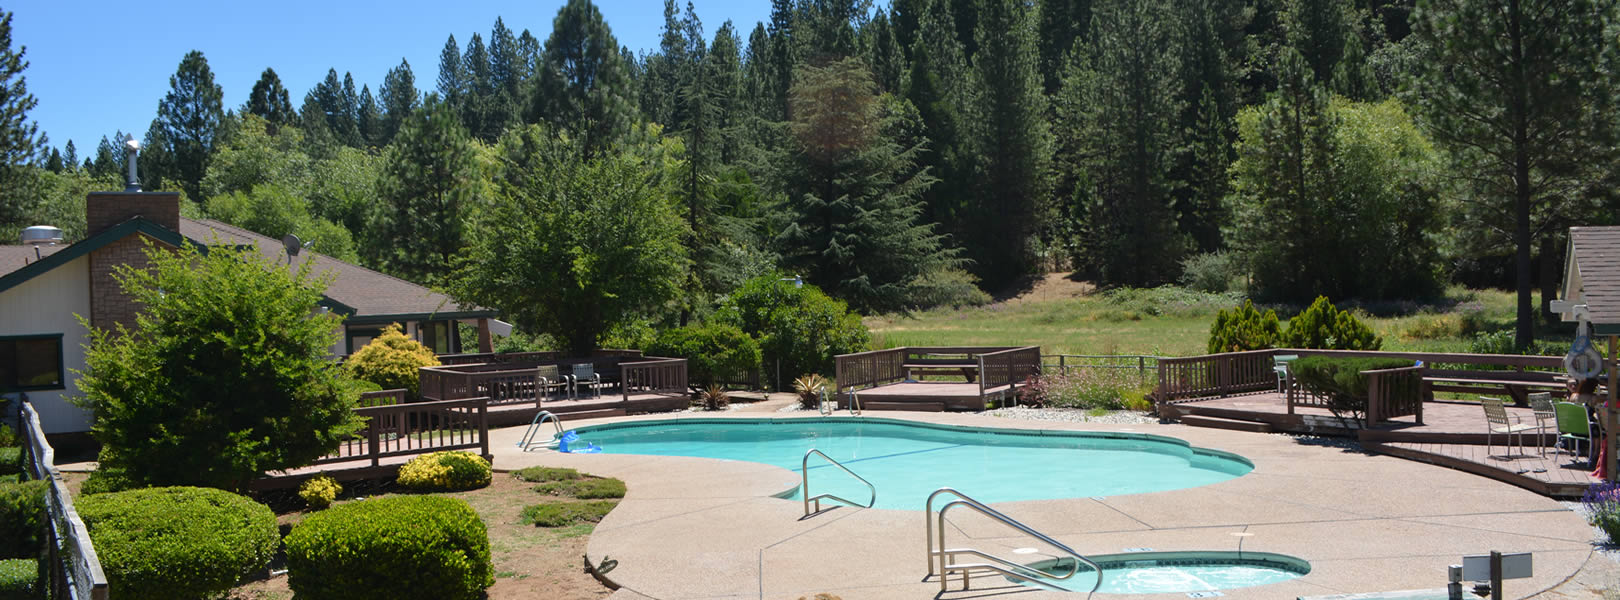 gold country hotel with pool and spa